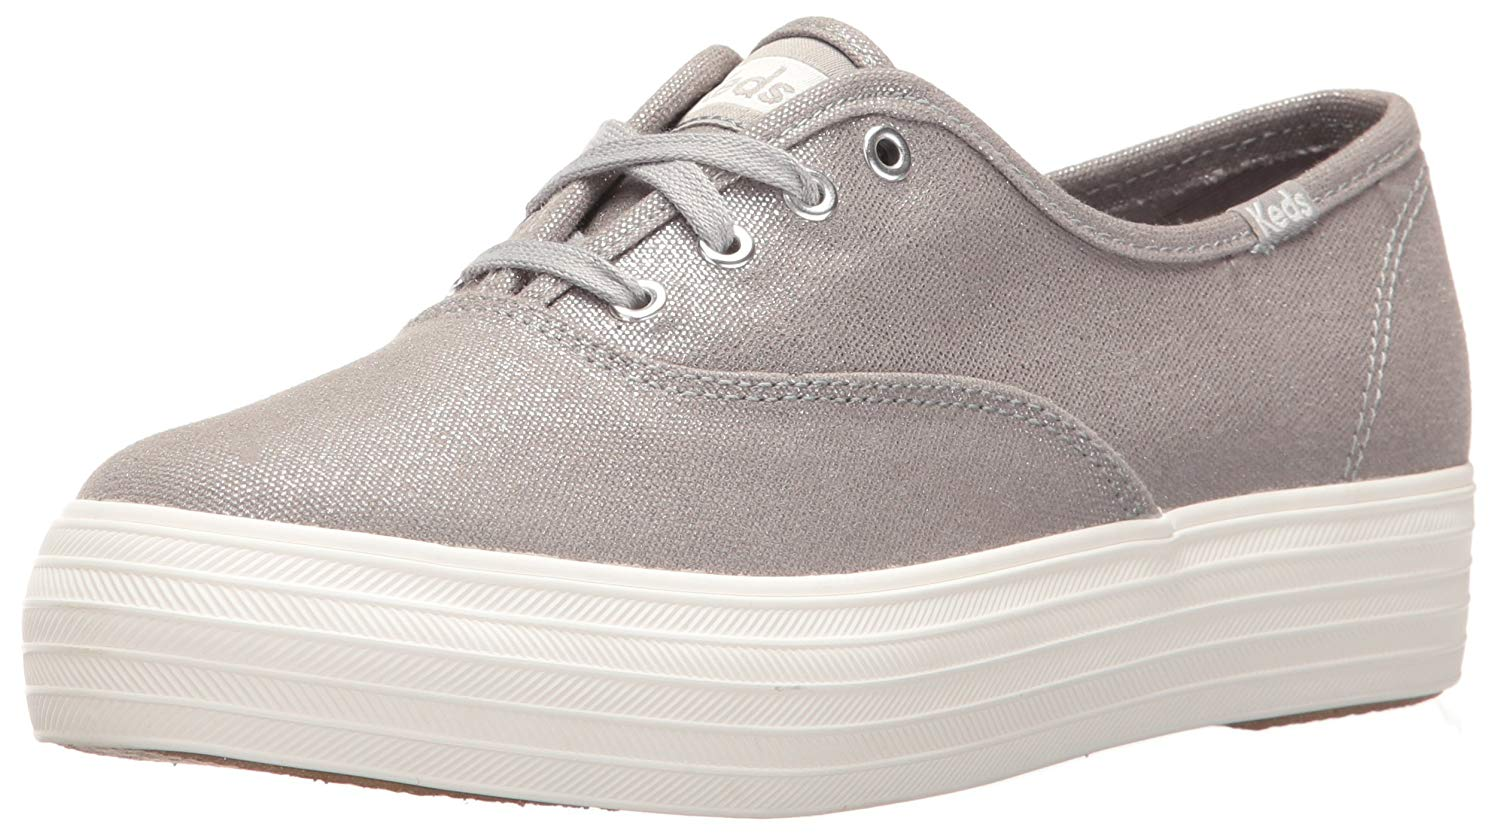 783832674f Keds Womens Triple Metallic Low Top Lace Up Fashion Sneakers